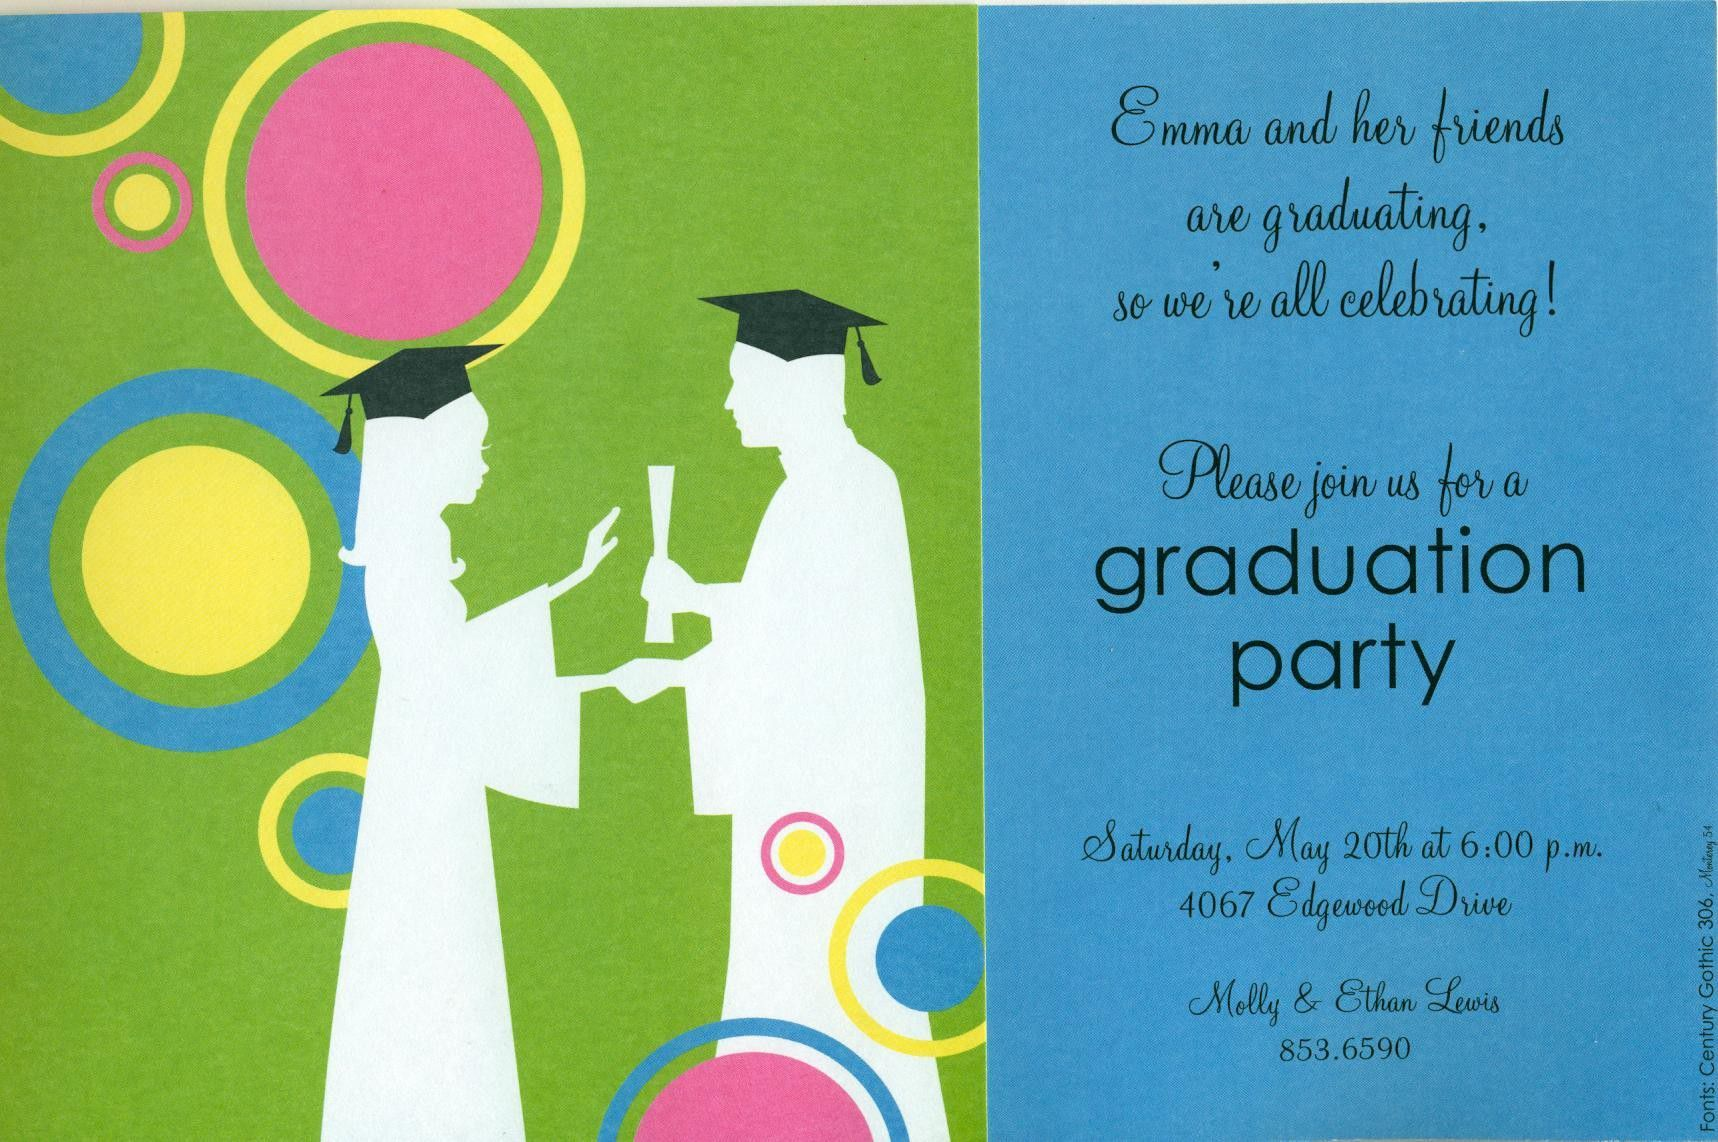 graduation invitation templates free download | graduation ...